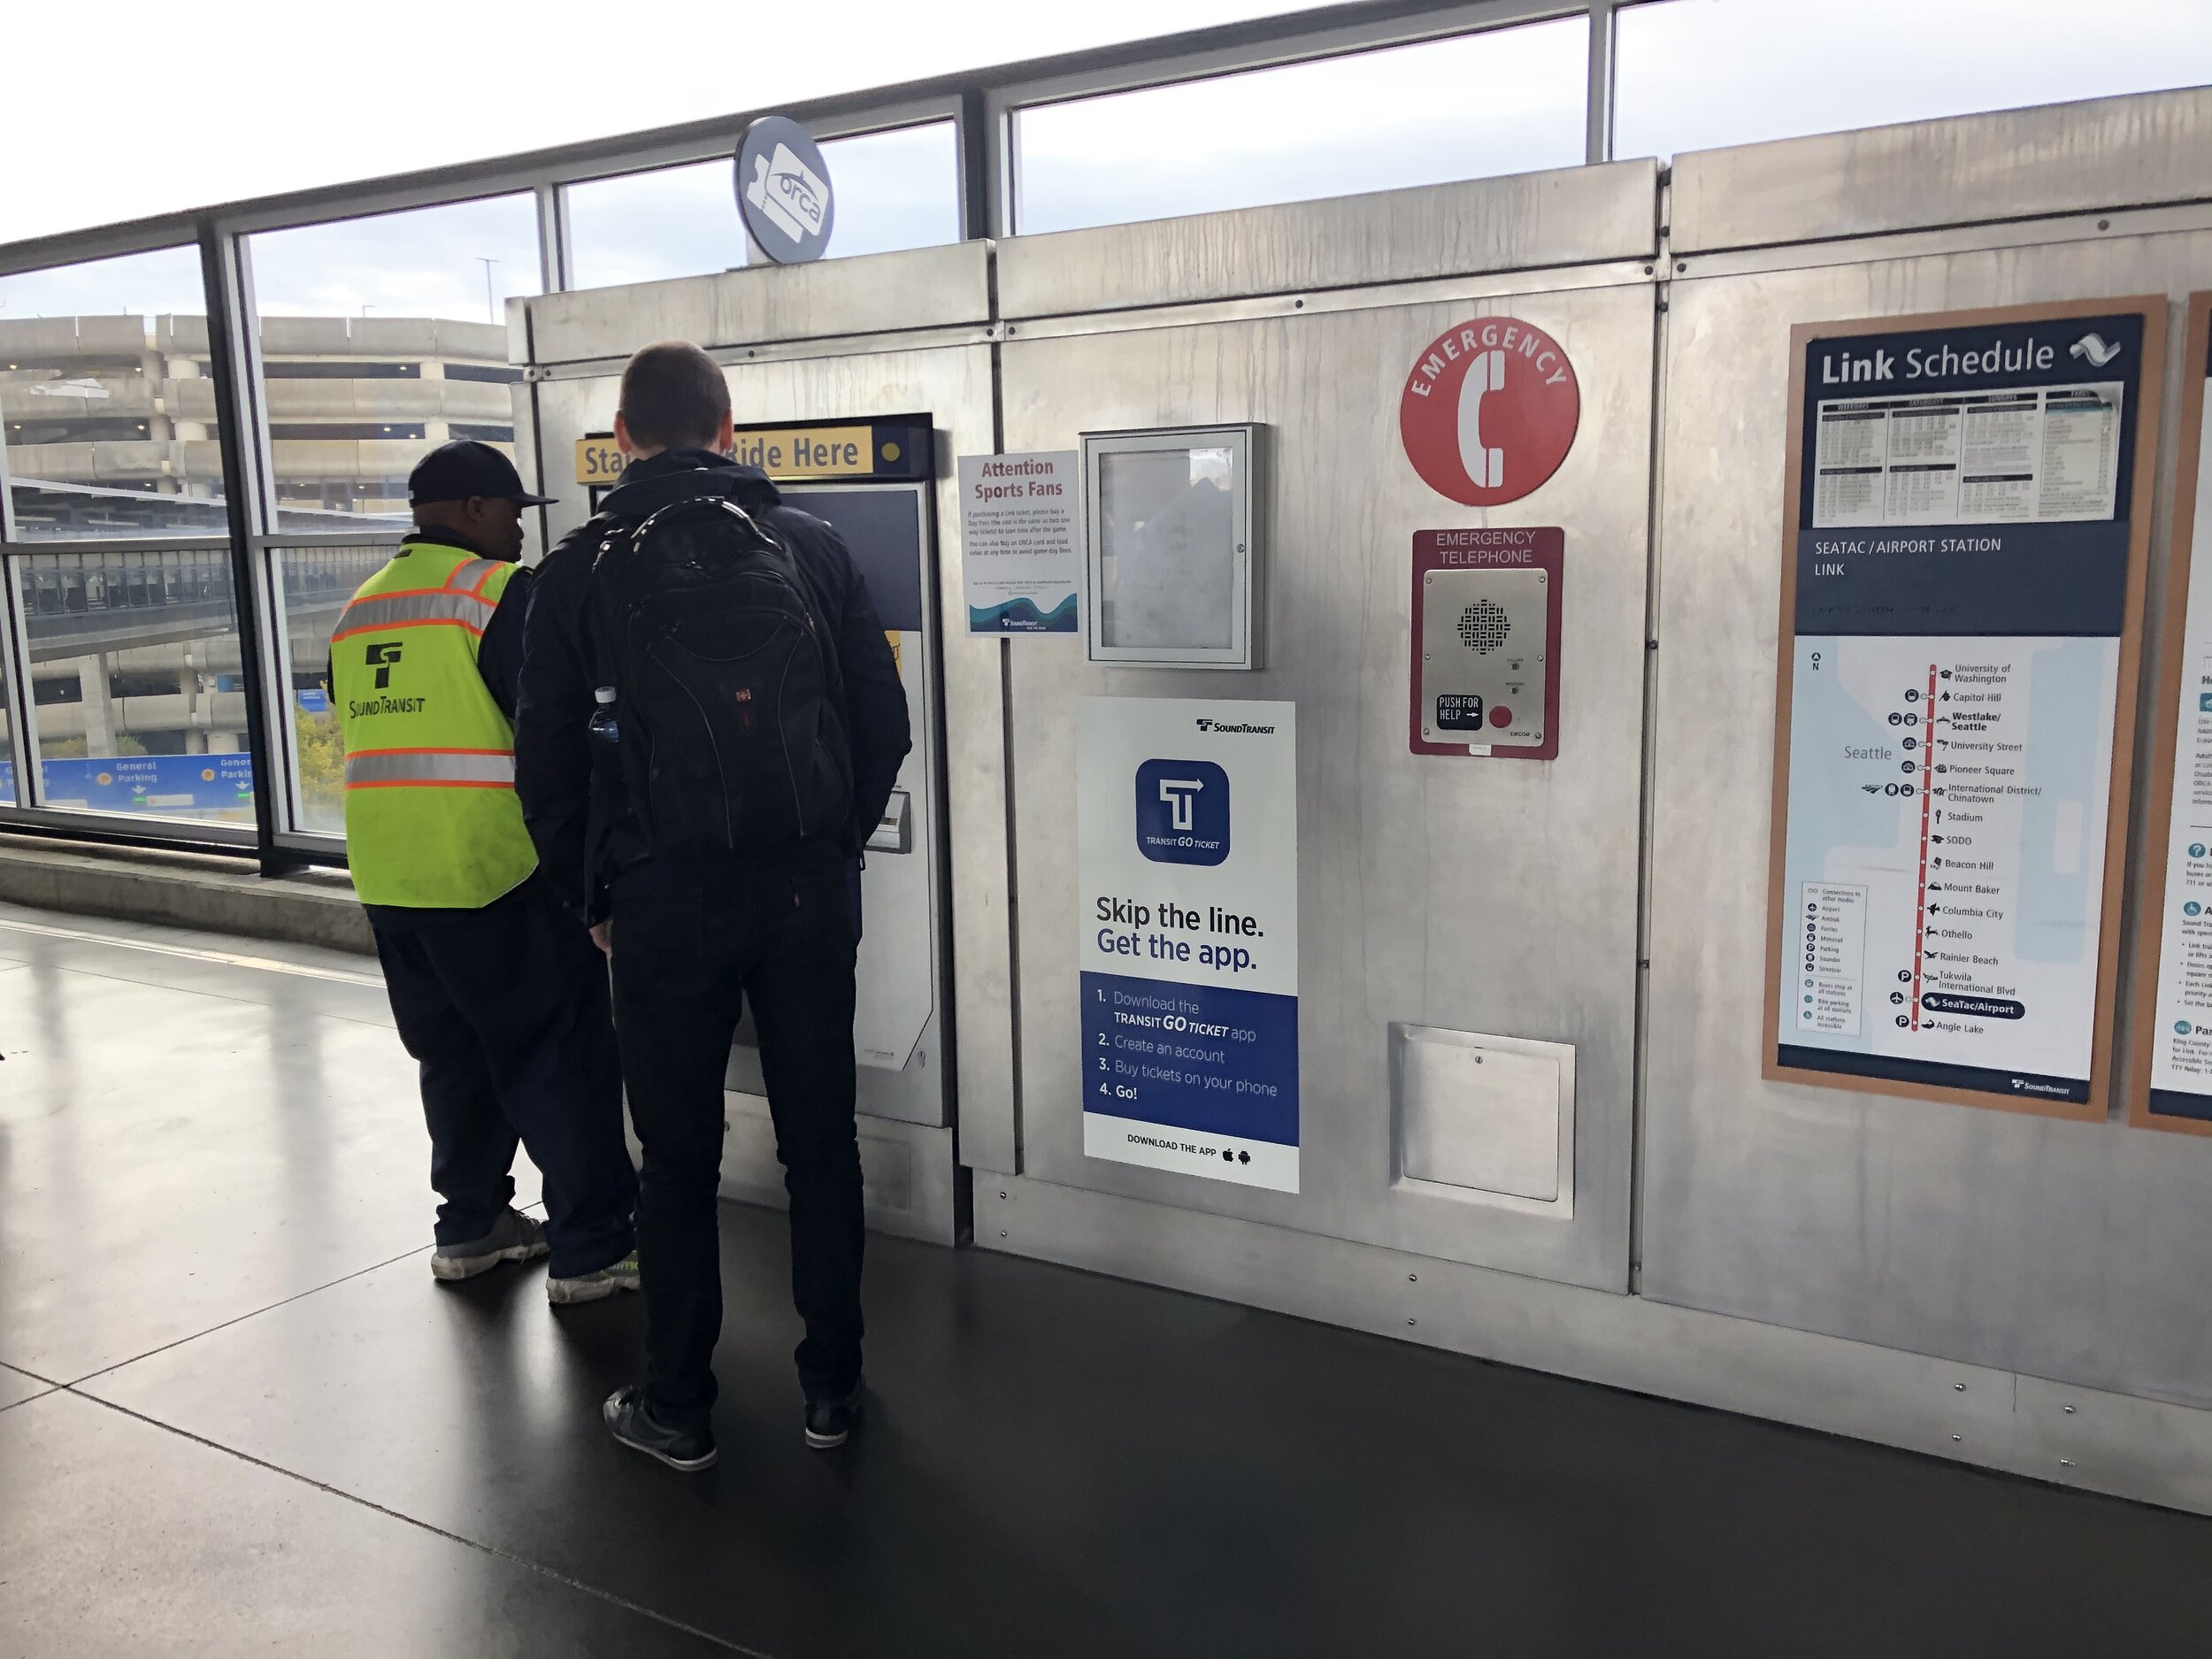 A light rail employee helping a passenger pay for their fare.